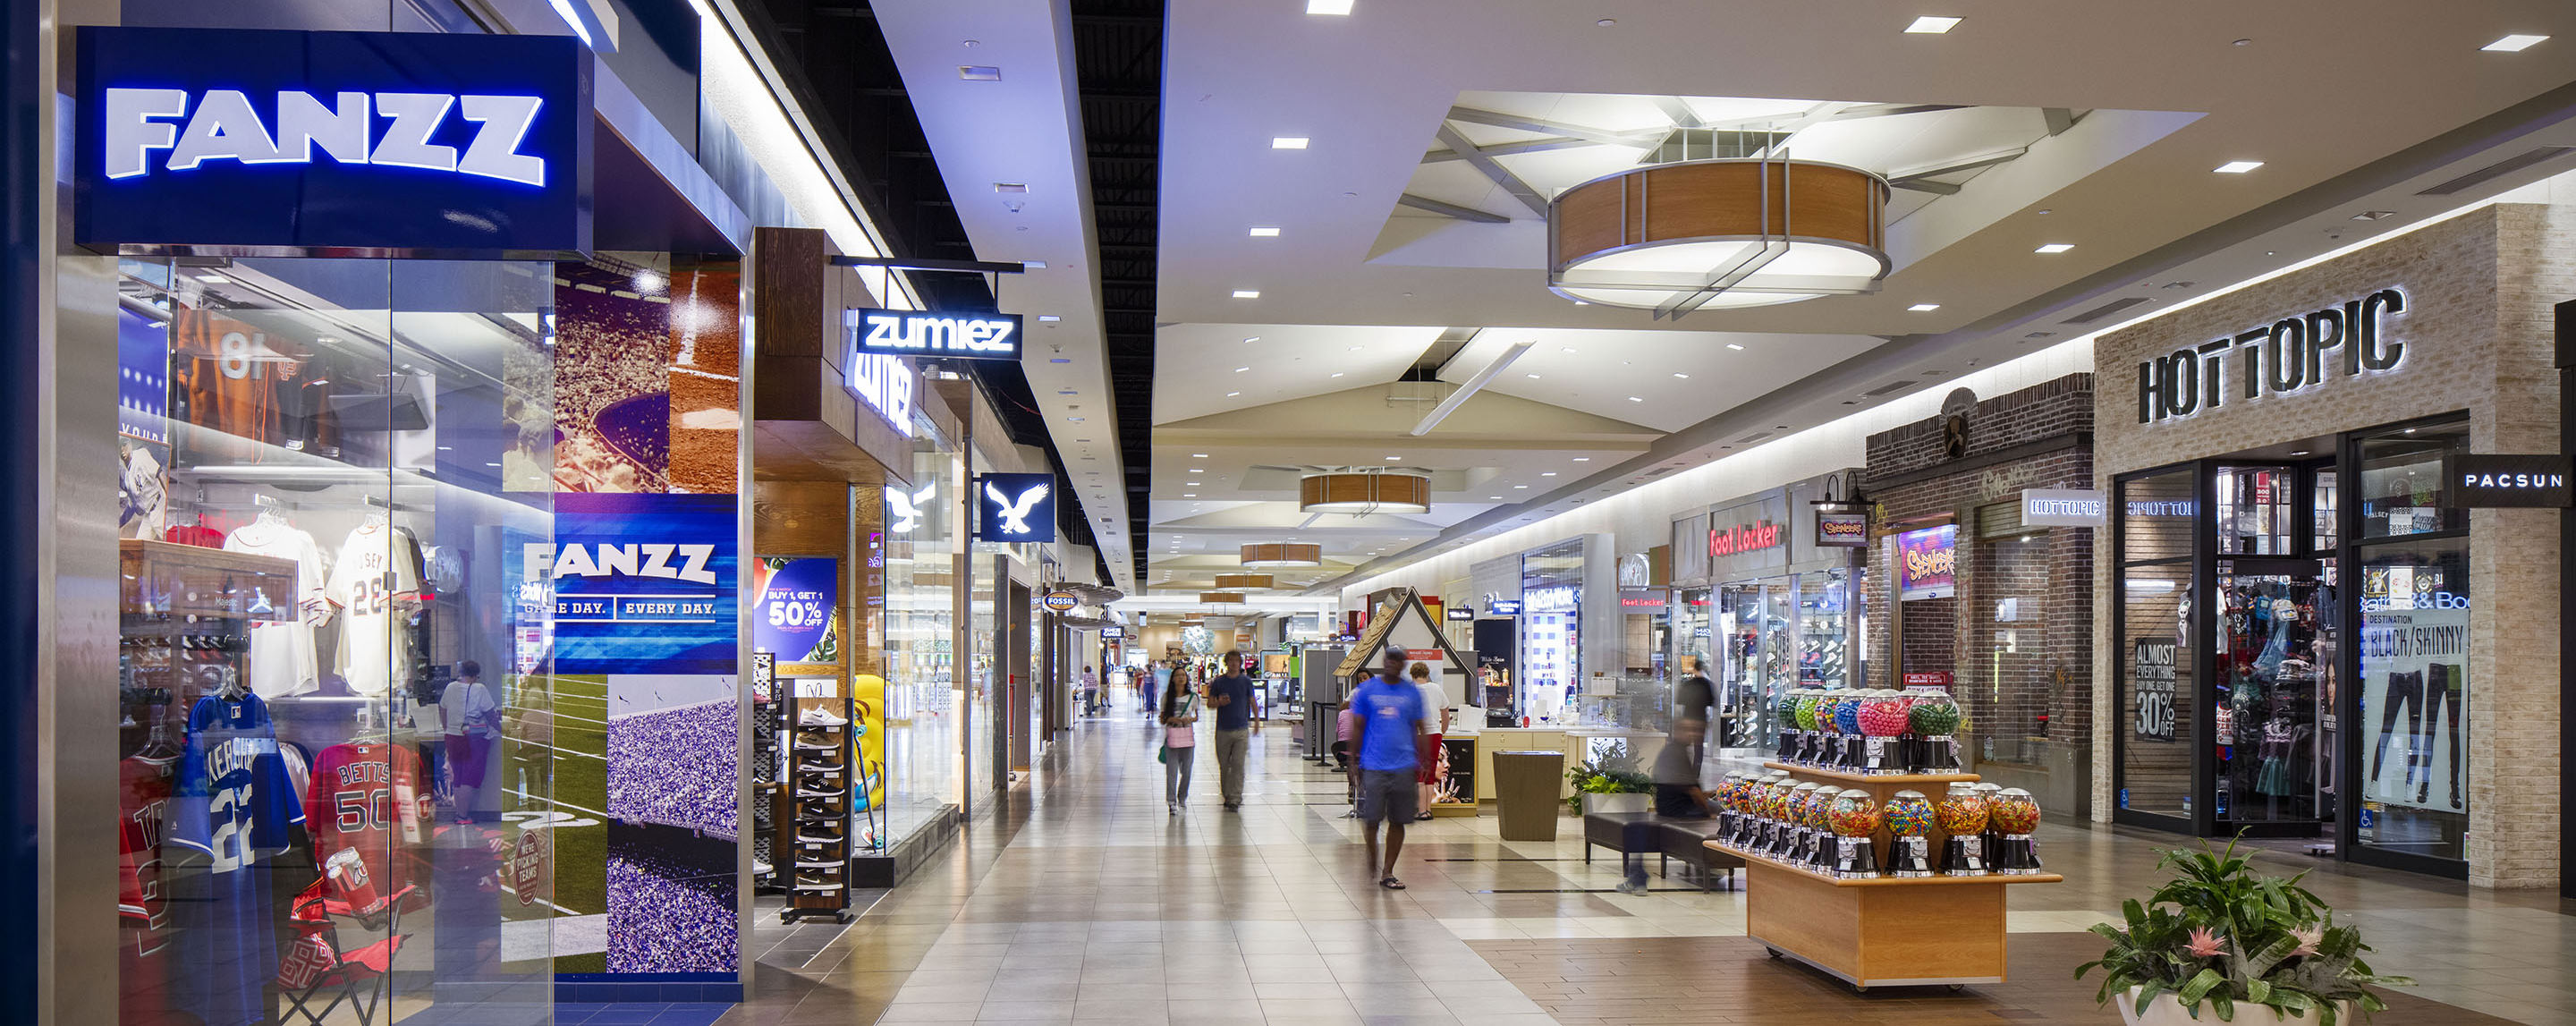 A line of stores stand in an indoor mall. Several brands are visible, including Fanzz and Hot Topic